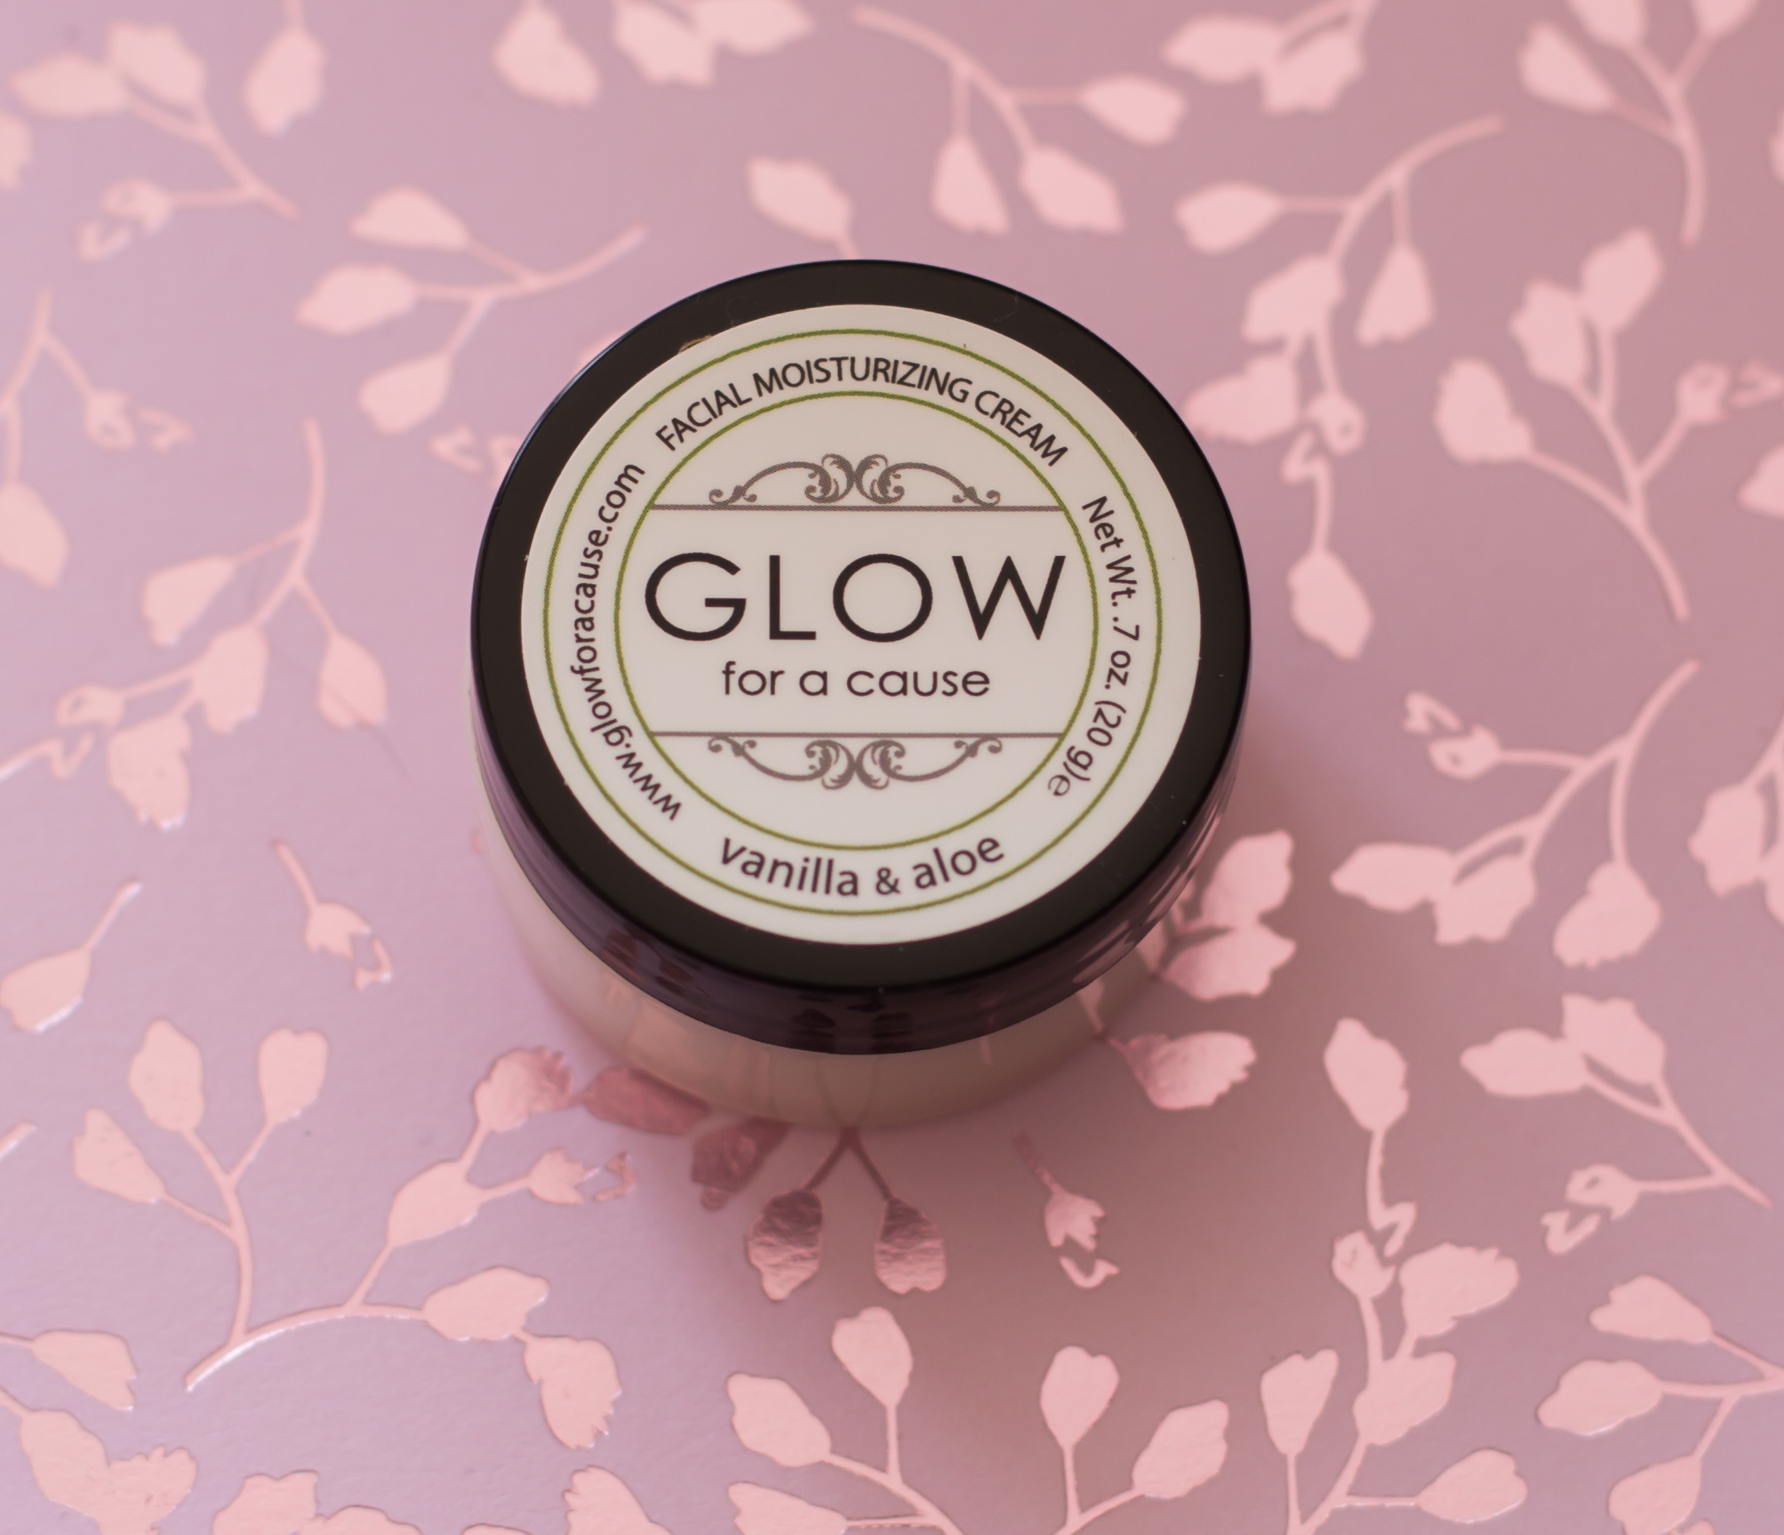 Glow for a cause Facial Moisturizing Cream - StyleTone juni 2018